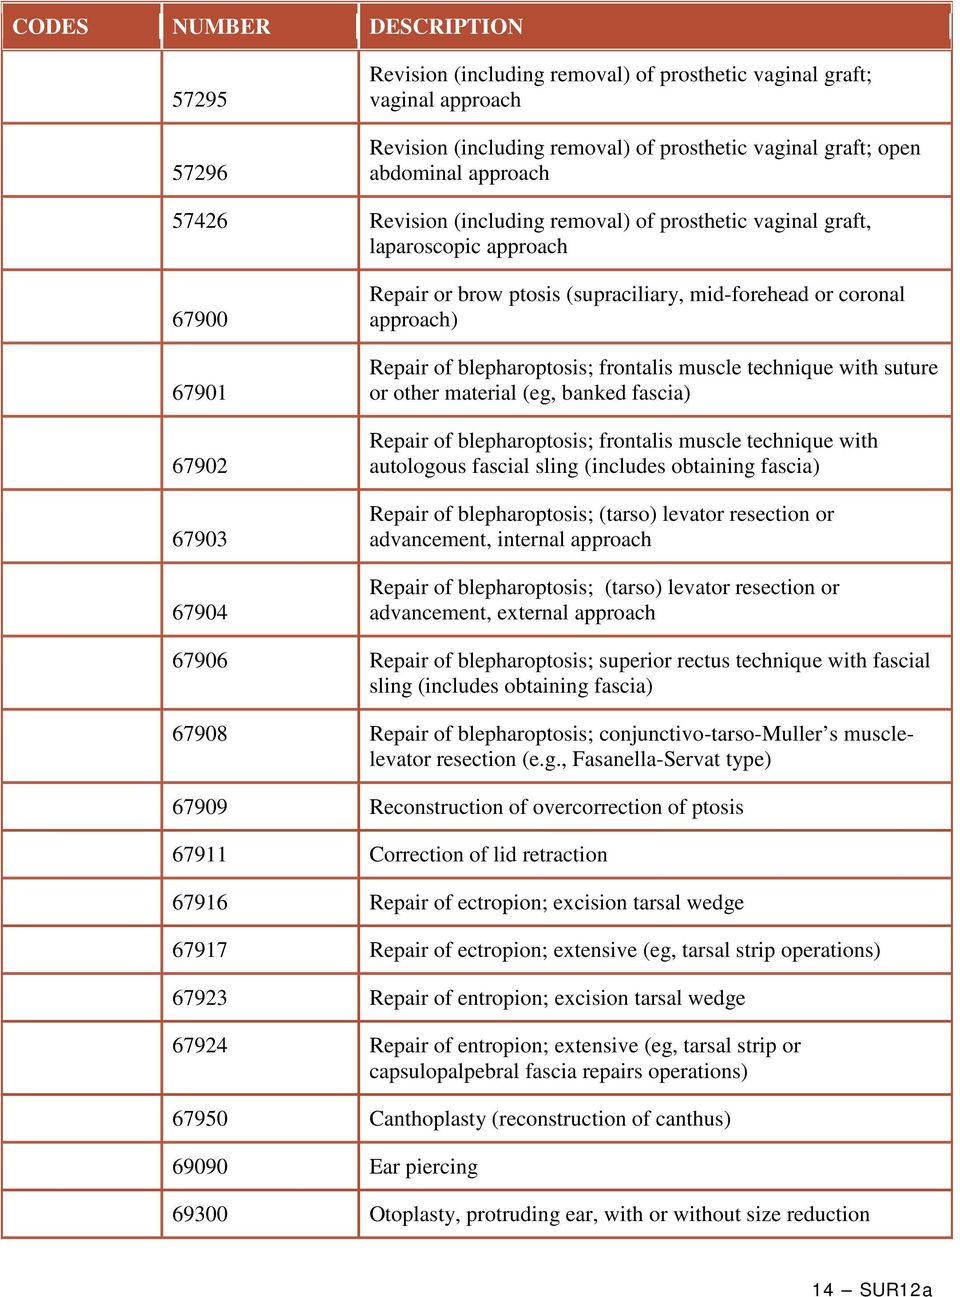 blepharoptosis; frontalis muscle technique with suture or other material (eg, banked fascia) Repair of blepharoptosis; frontalis muscle technique with autologous fascial sling (includes obtaining